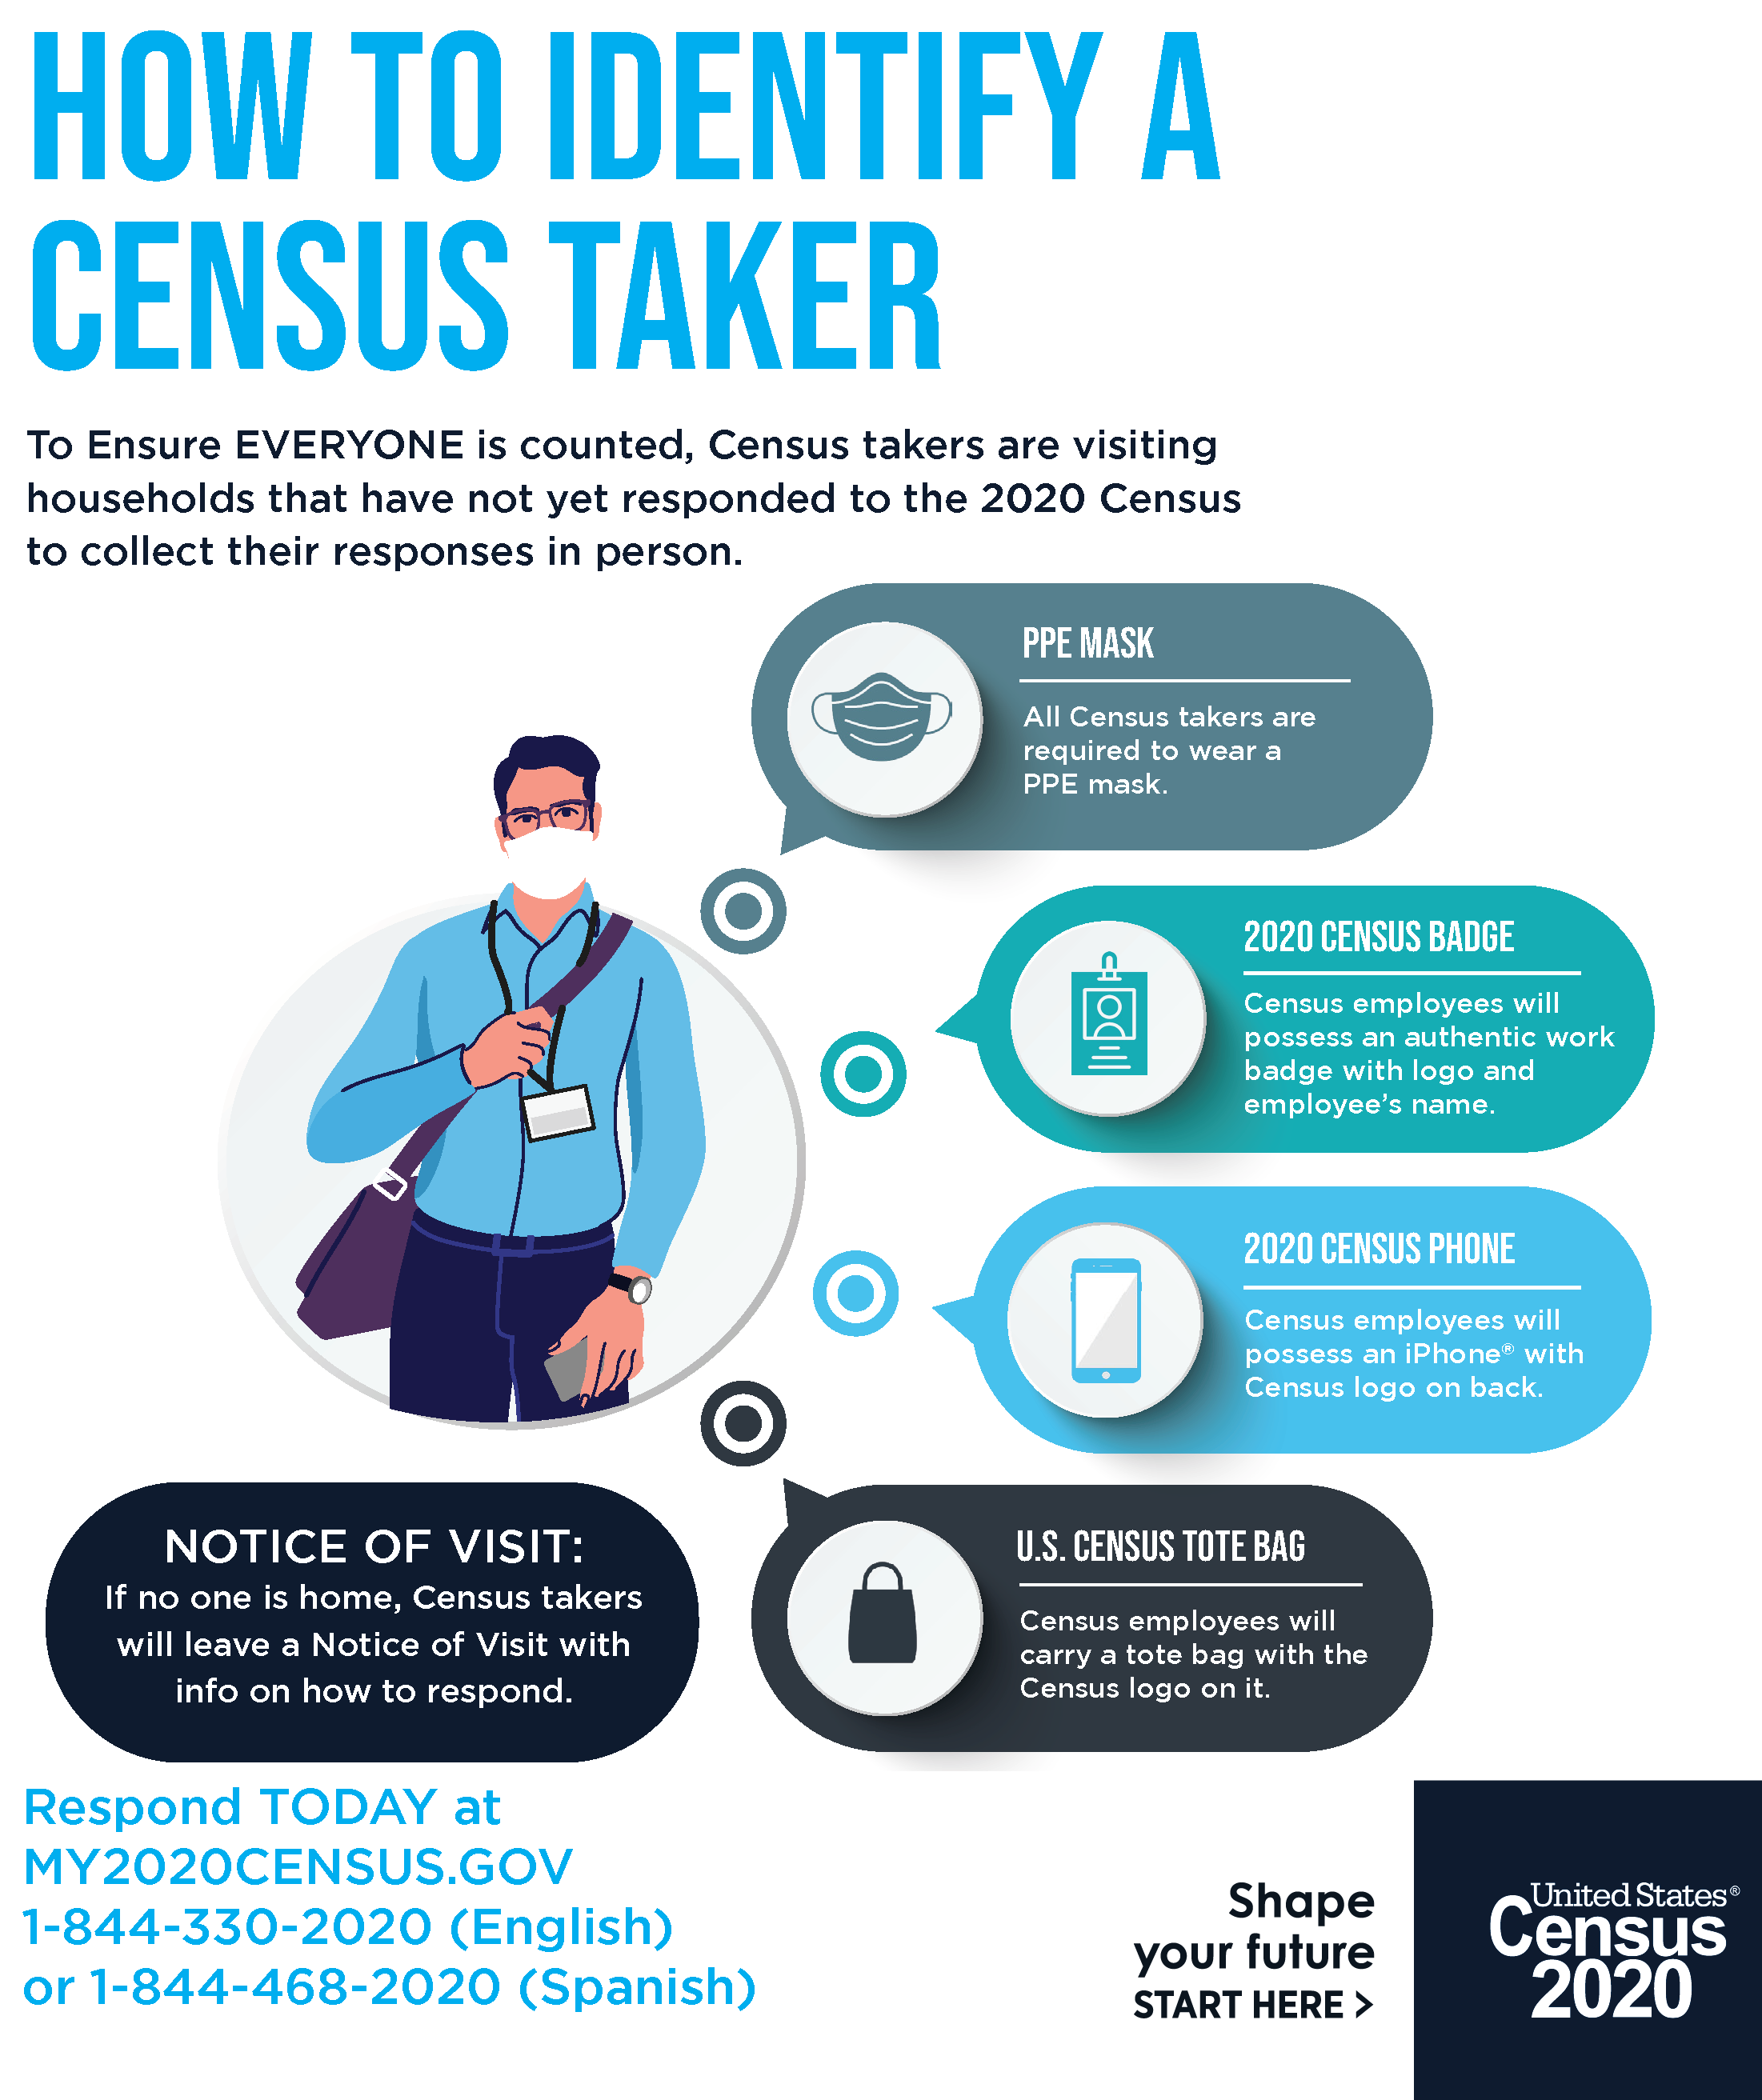 How to Identify a Census Taker (English)